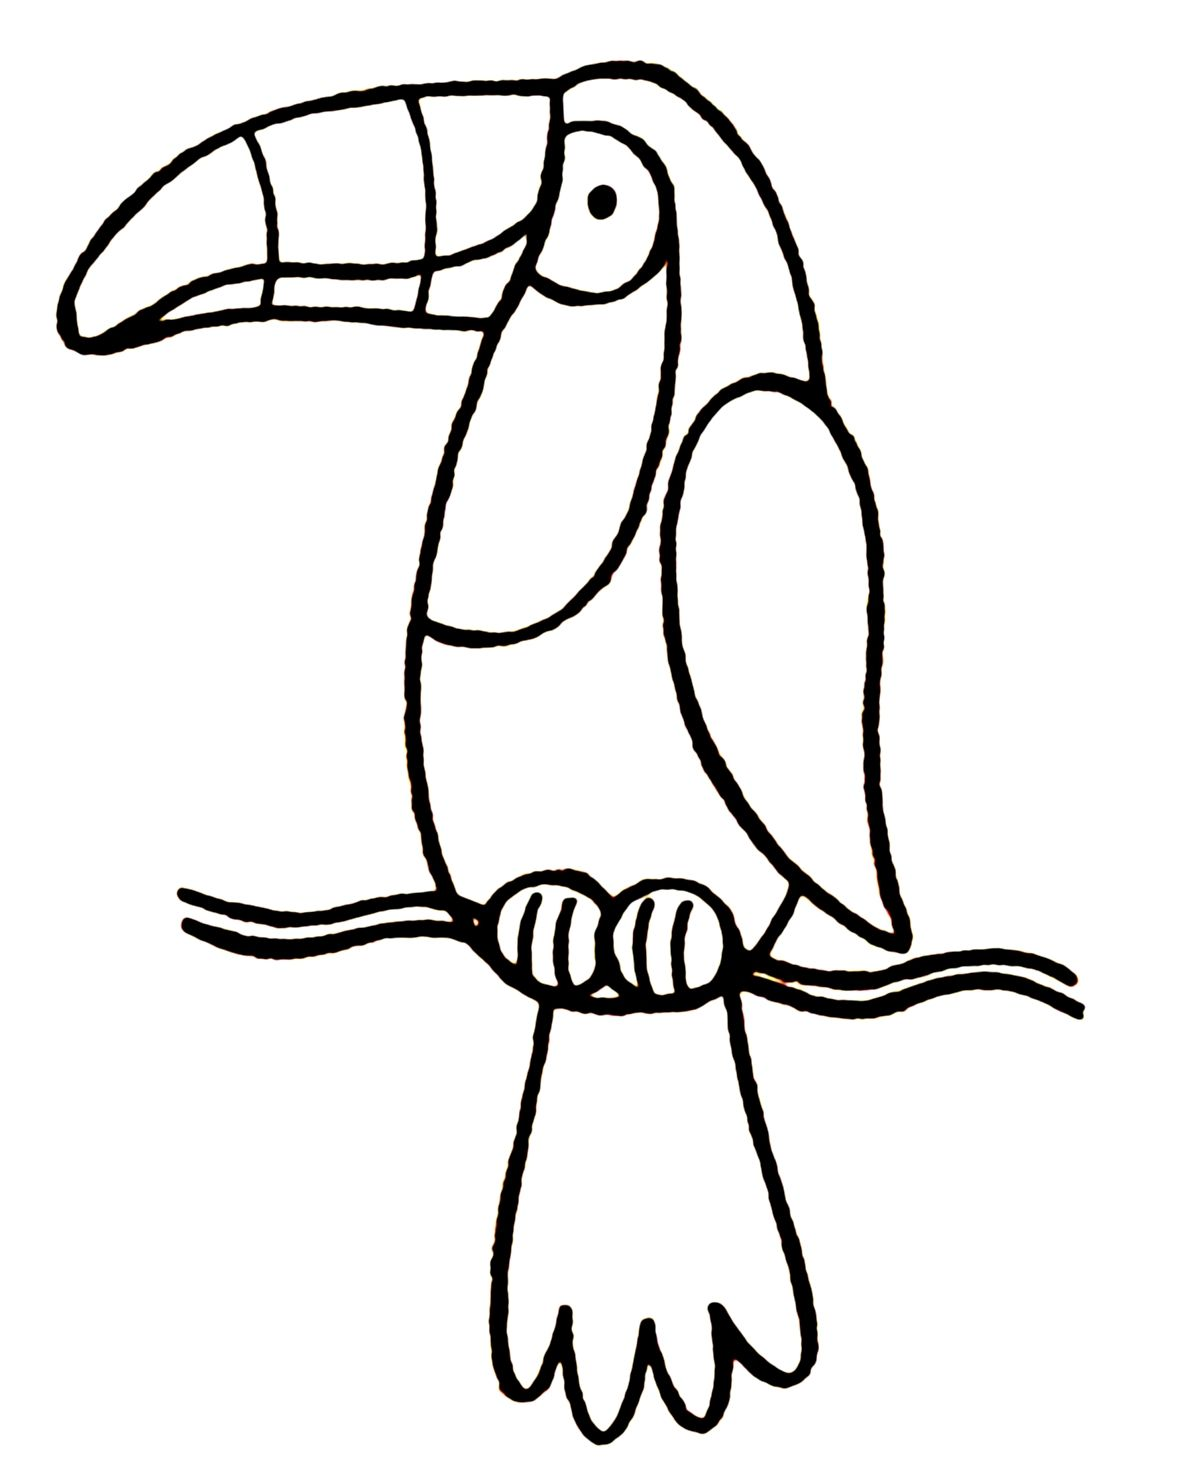 Toucan Coloring Page For Kids Printable Coloring Sheet 99coloring